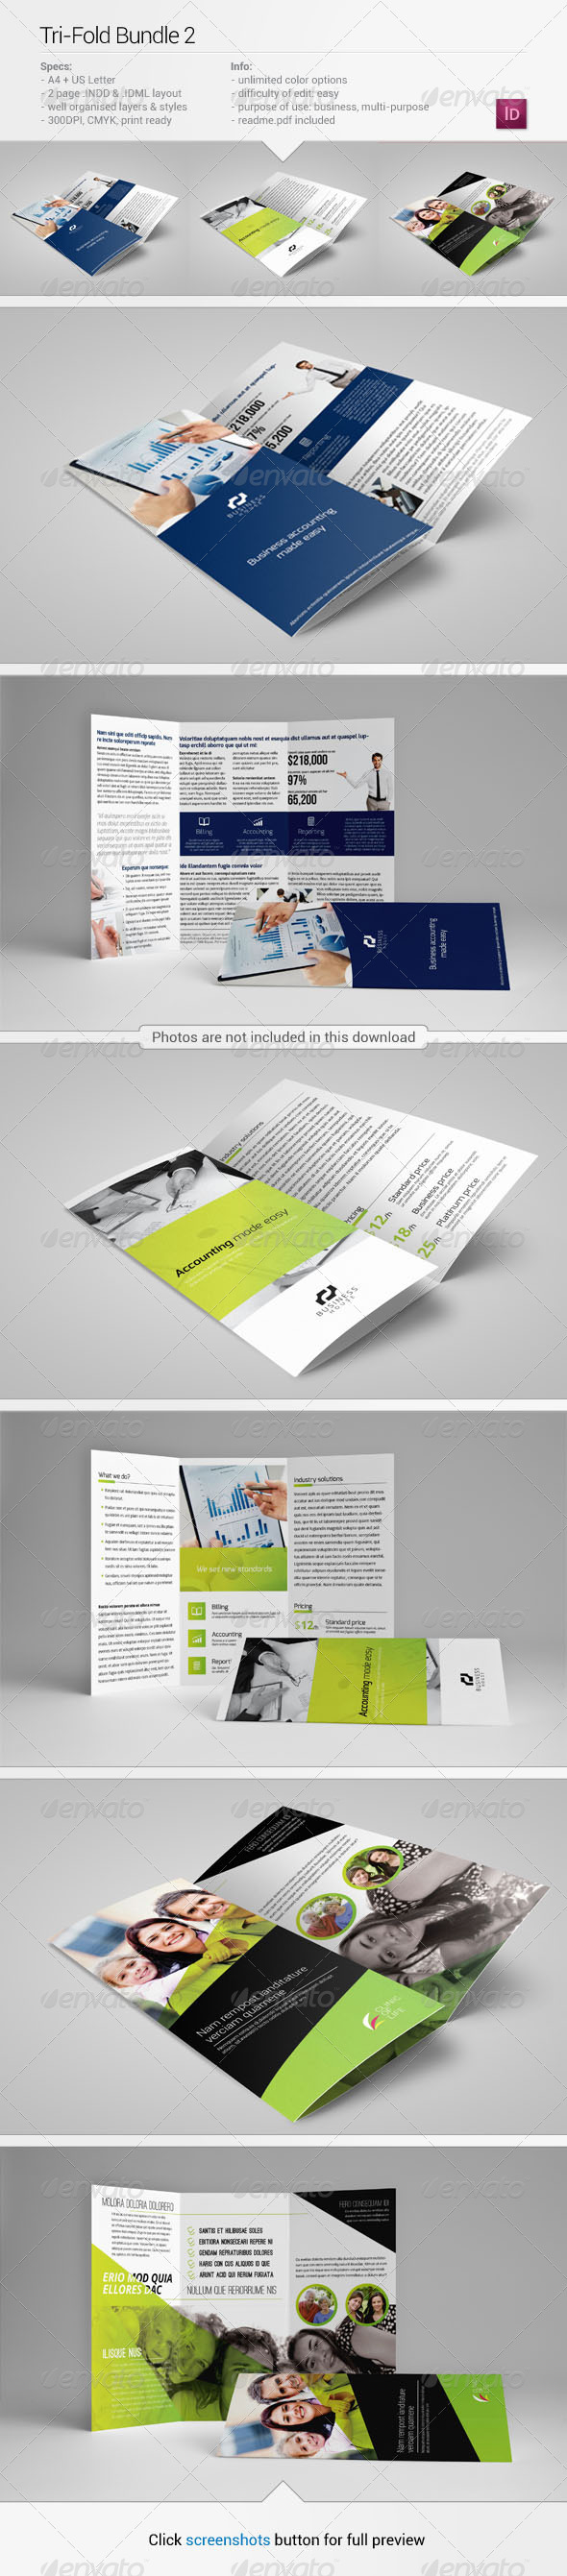 GraphicRiver Tri-Fold Bundle 2 6250822